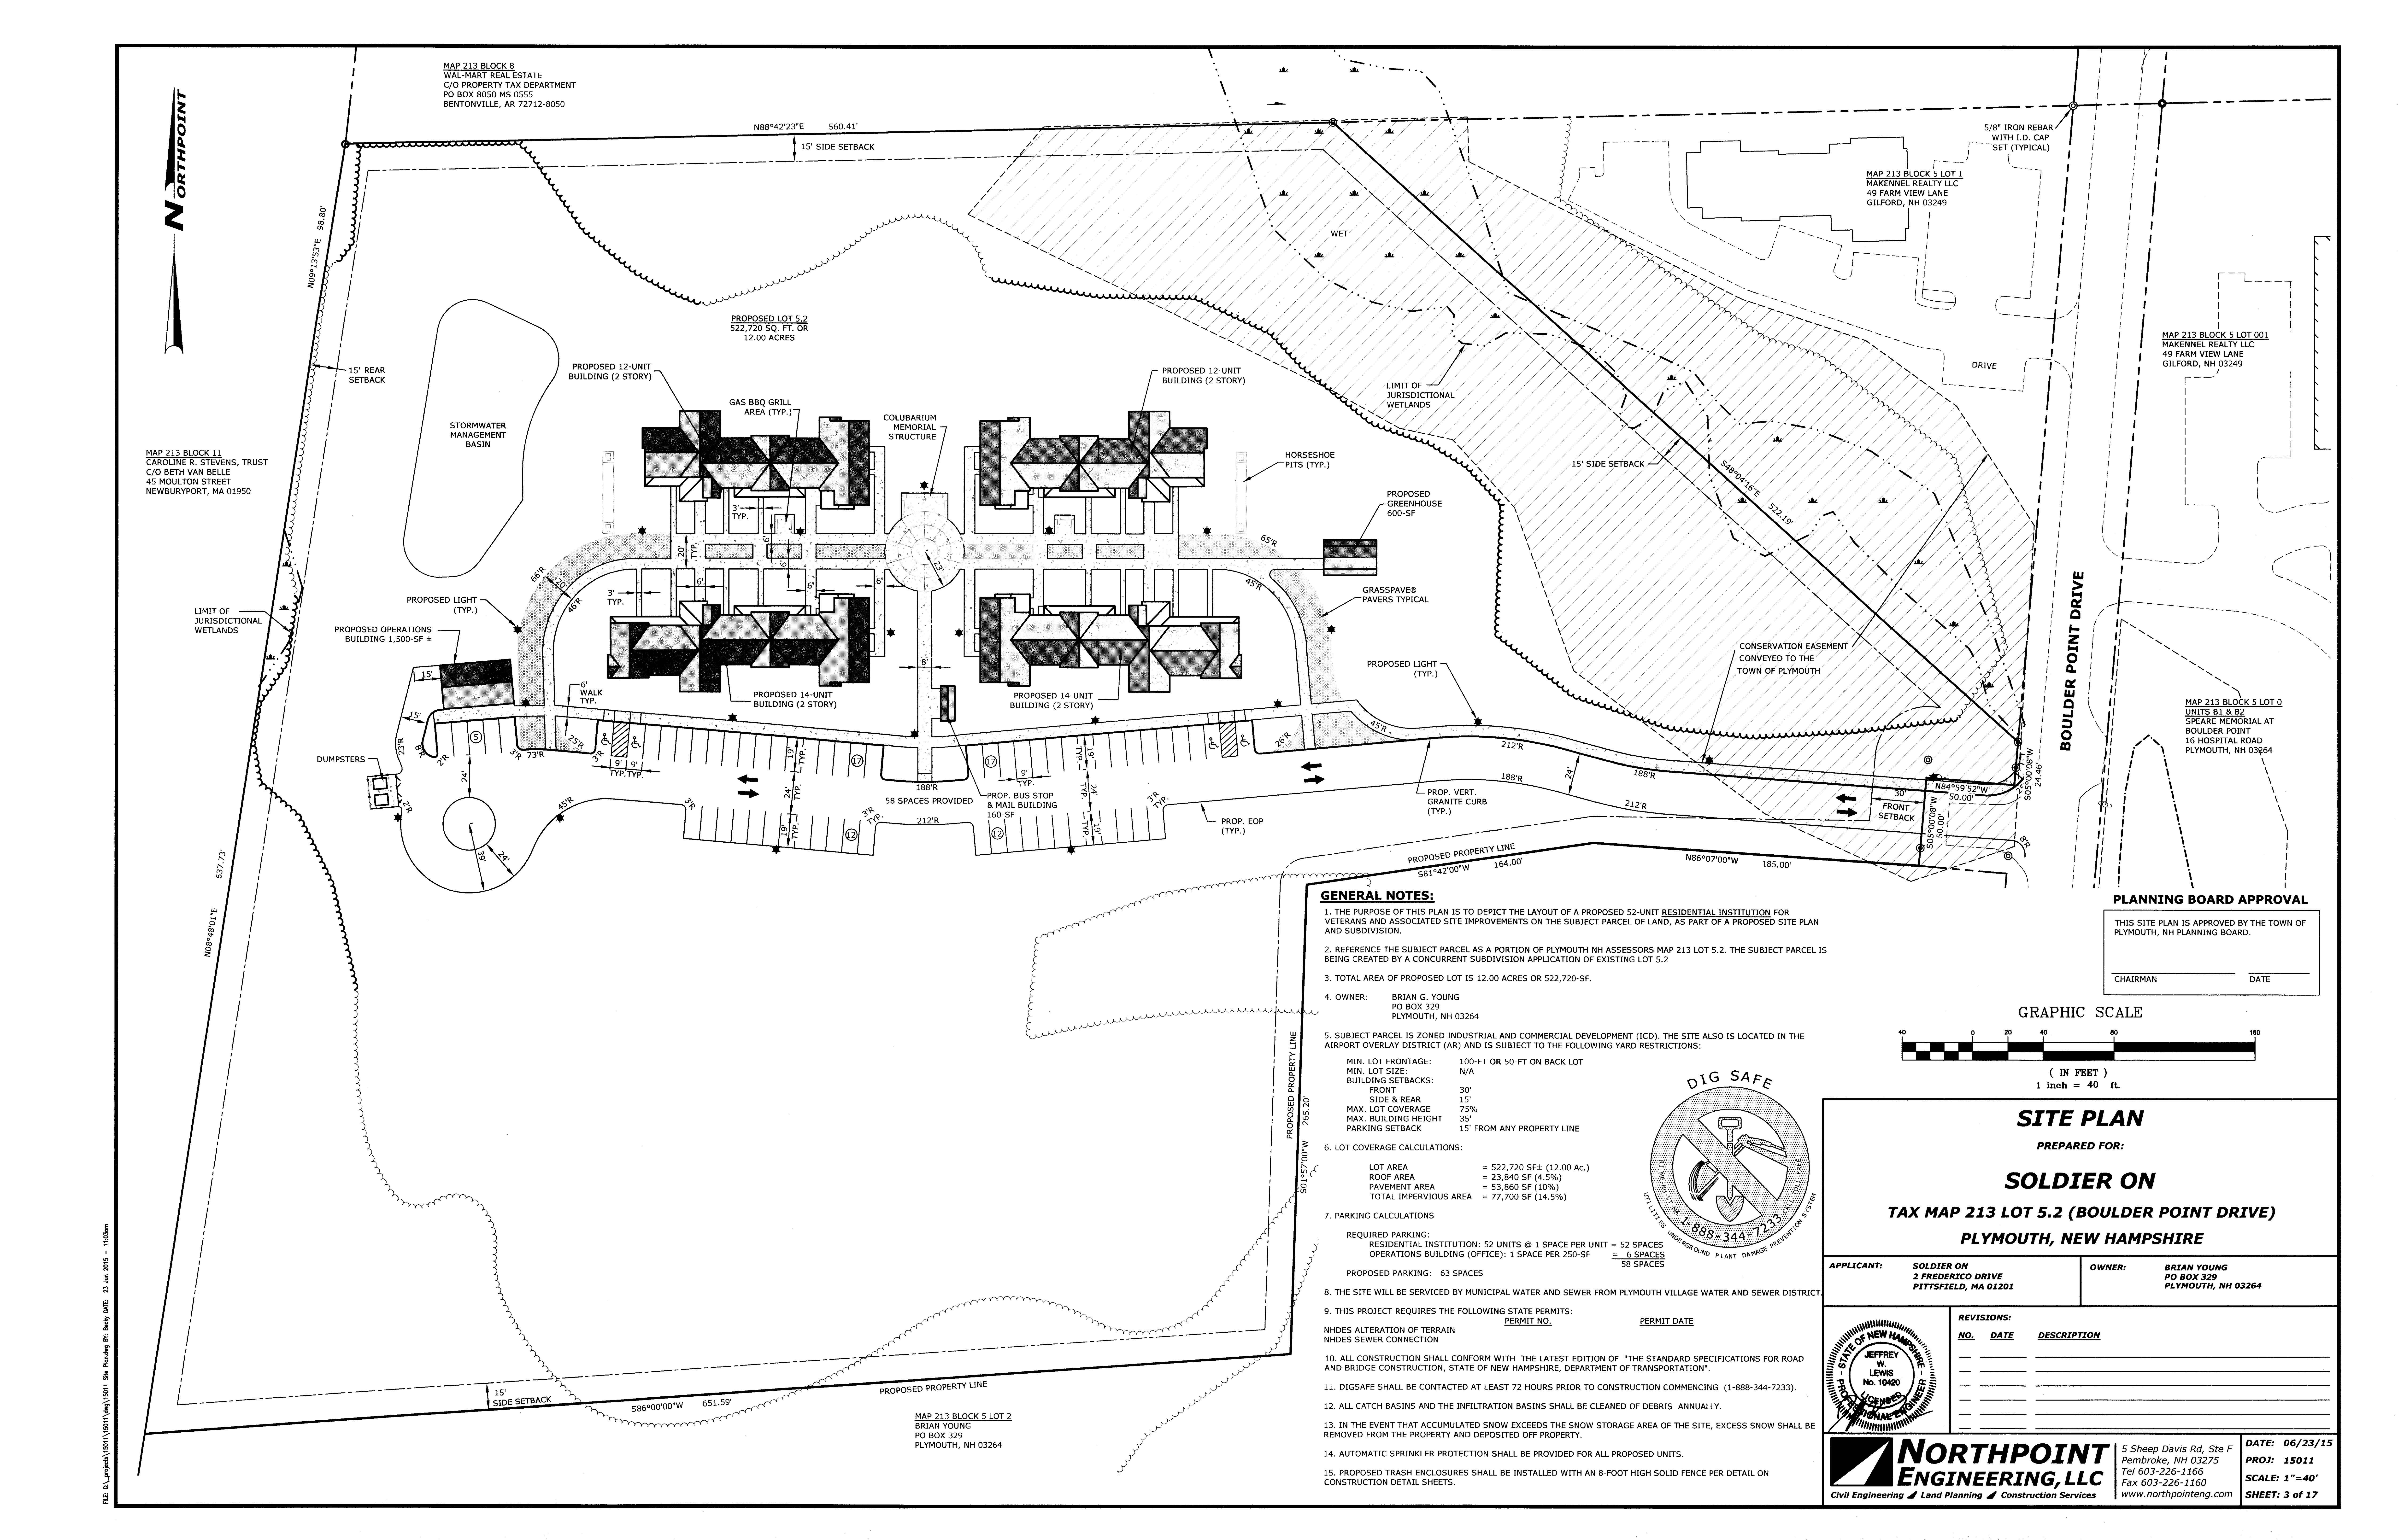 Plymouth Site Plan